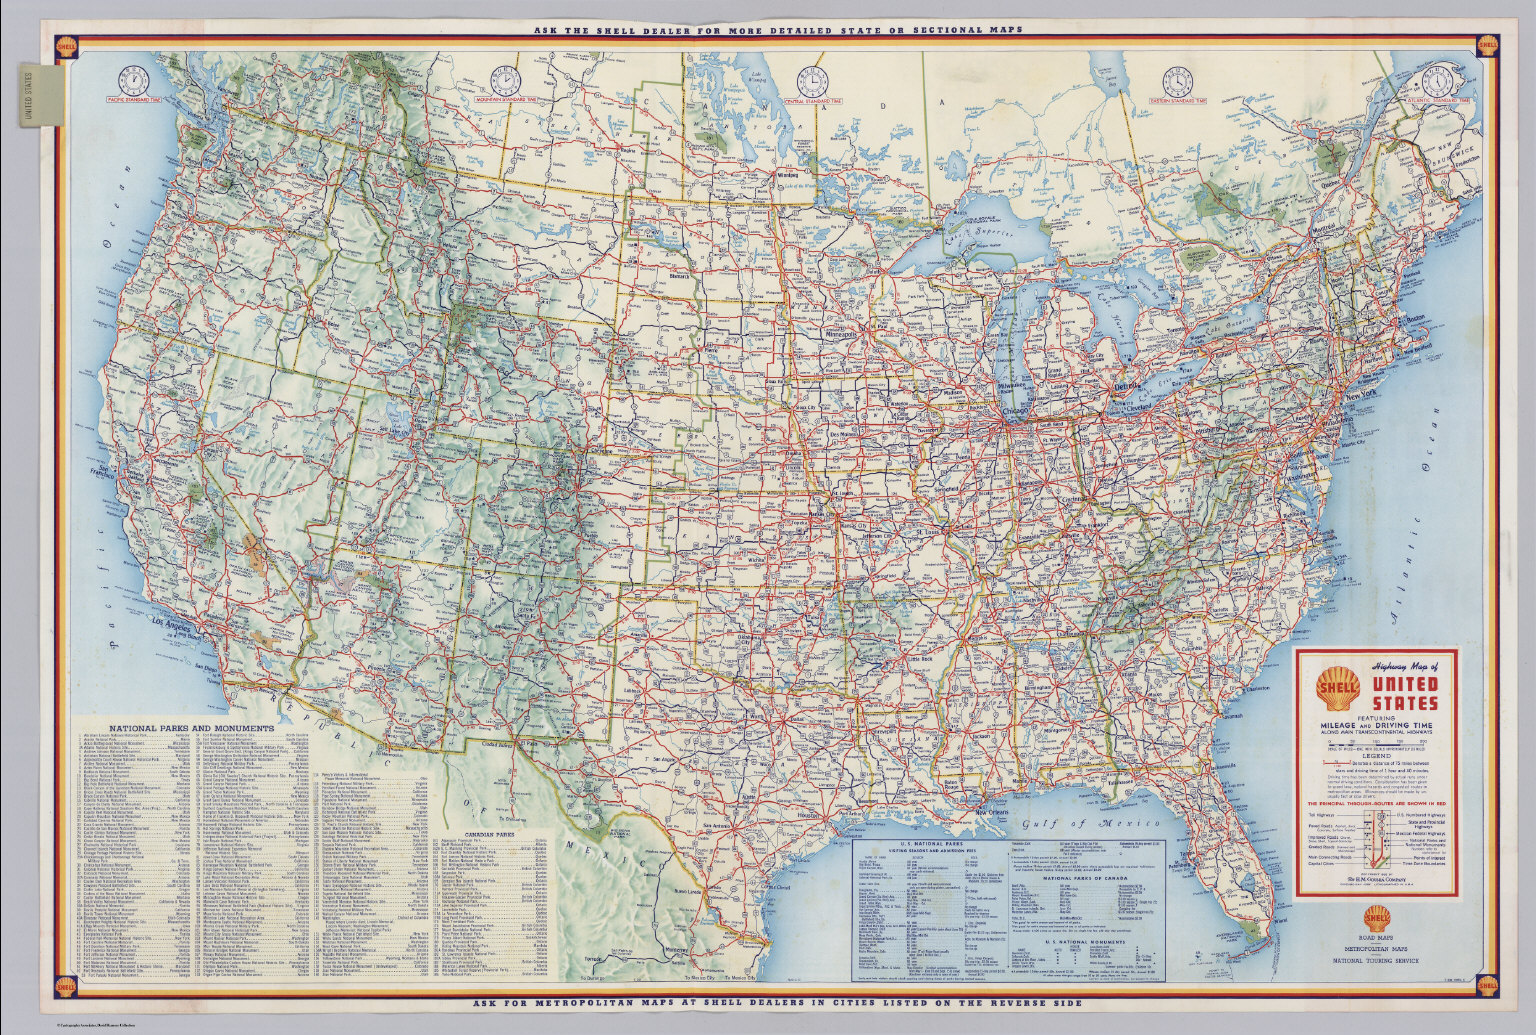 Shell Highway Map Of United States David Rumsey Historical Map